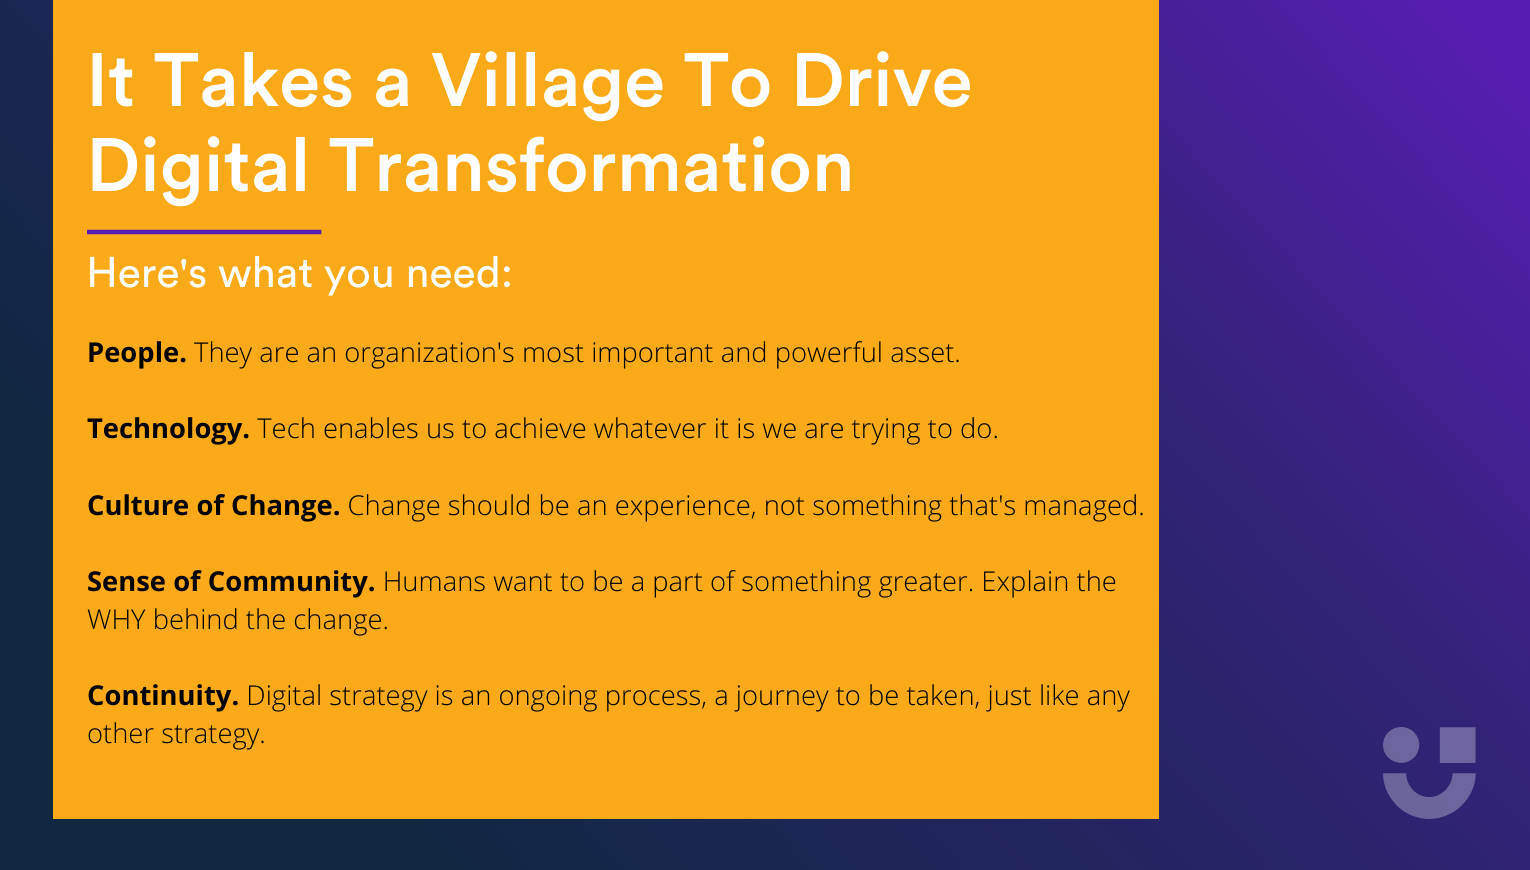 5 pillars needed to drive digital transformation written in white on a yellow and blue background. The 5 pillars are people, technology, culture of change, sense of community, and continuity.